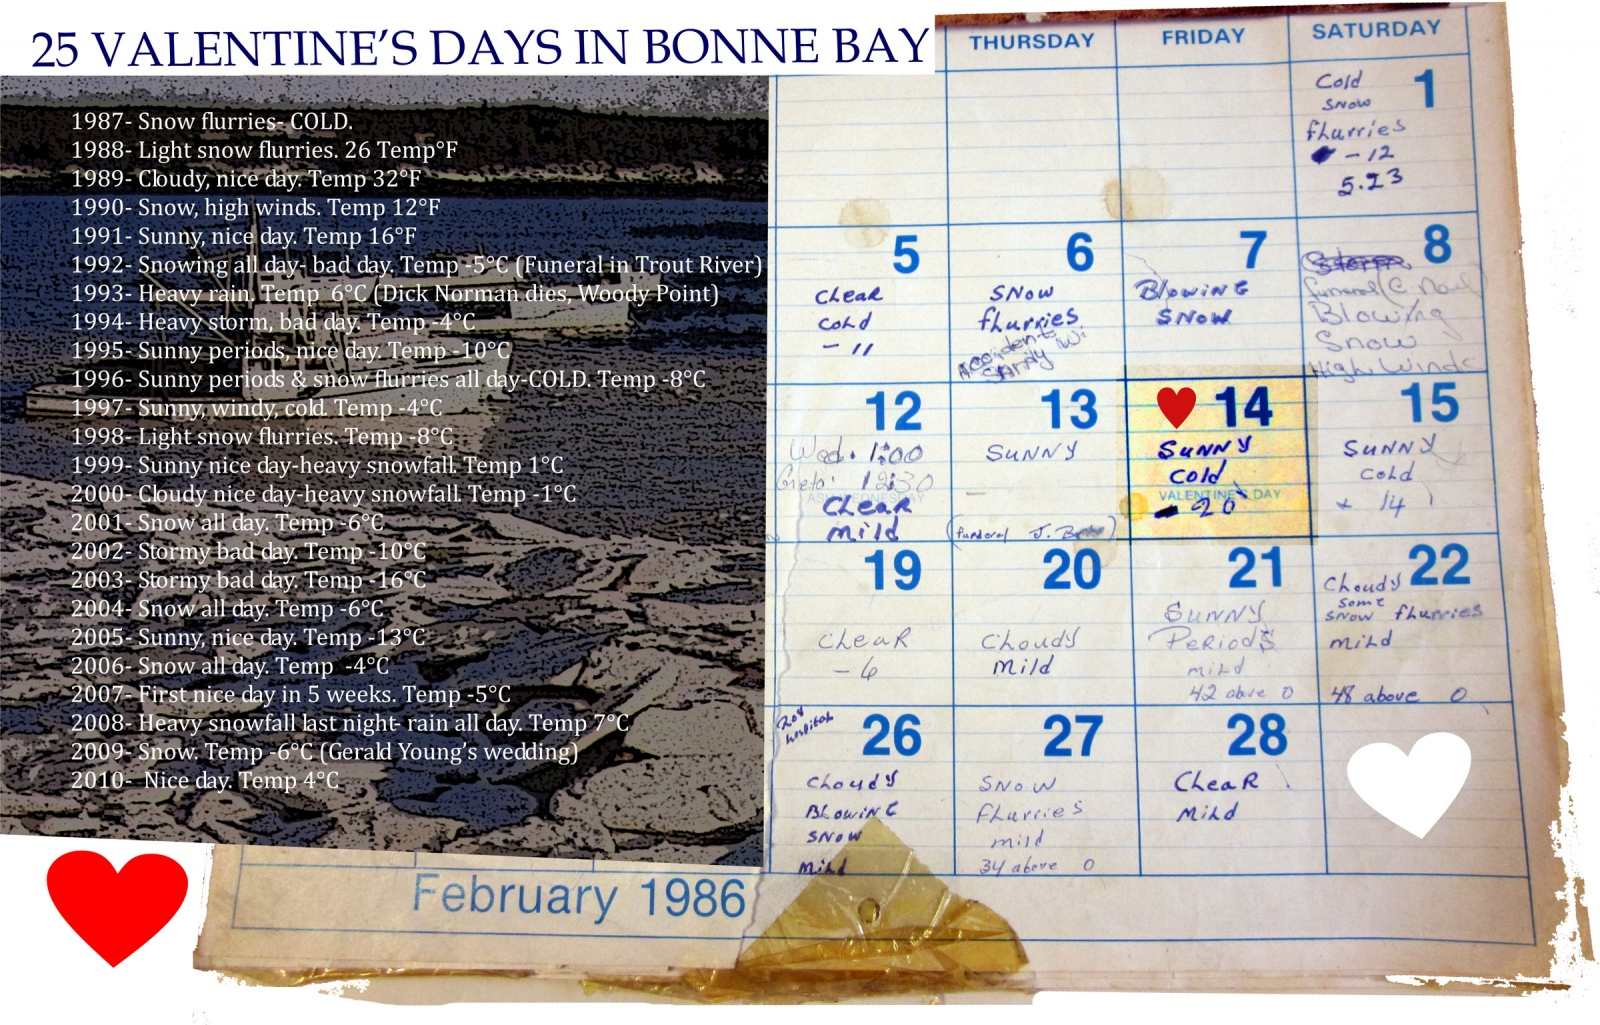 25 Valentine's Days in Bonne Bay